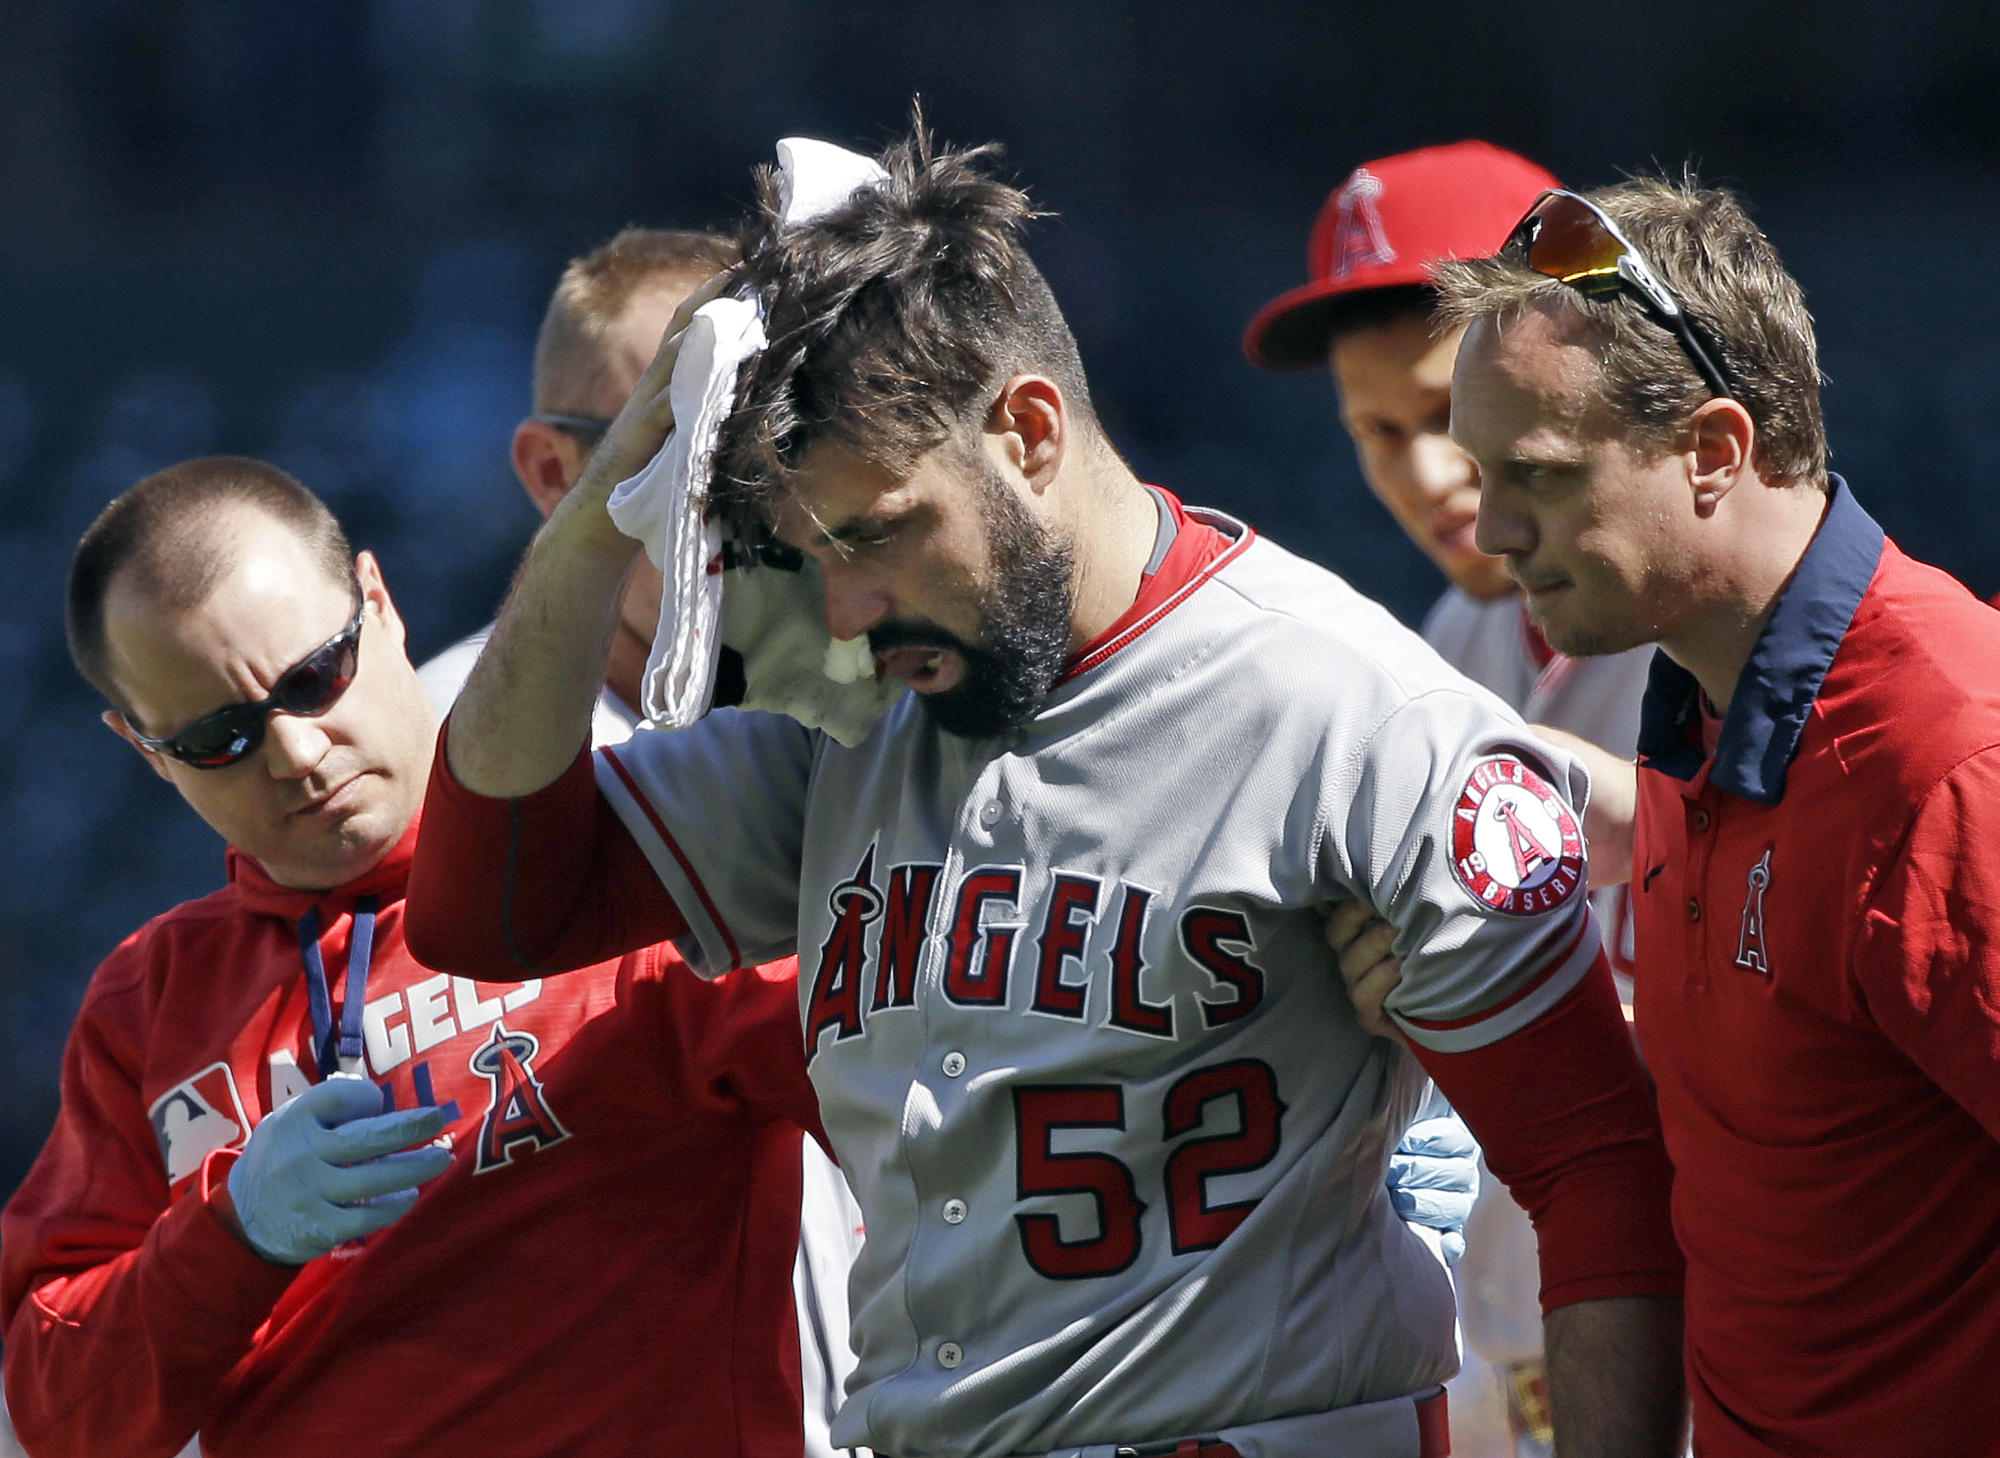 Matt Shoemaker, pitching for the Angels, left the field after being hit by a line drive on Sept. 4, 2016.